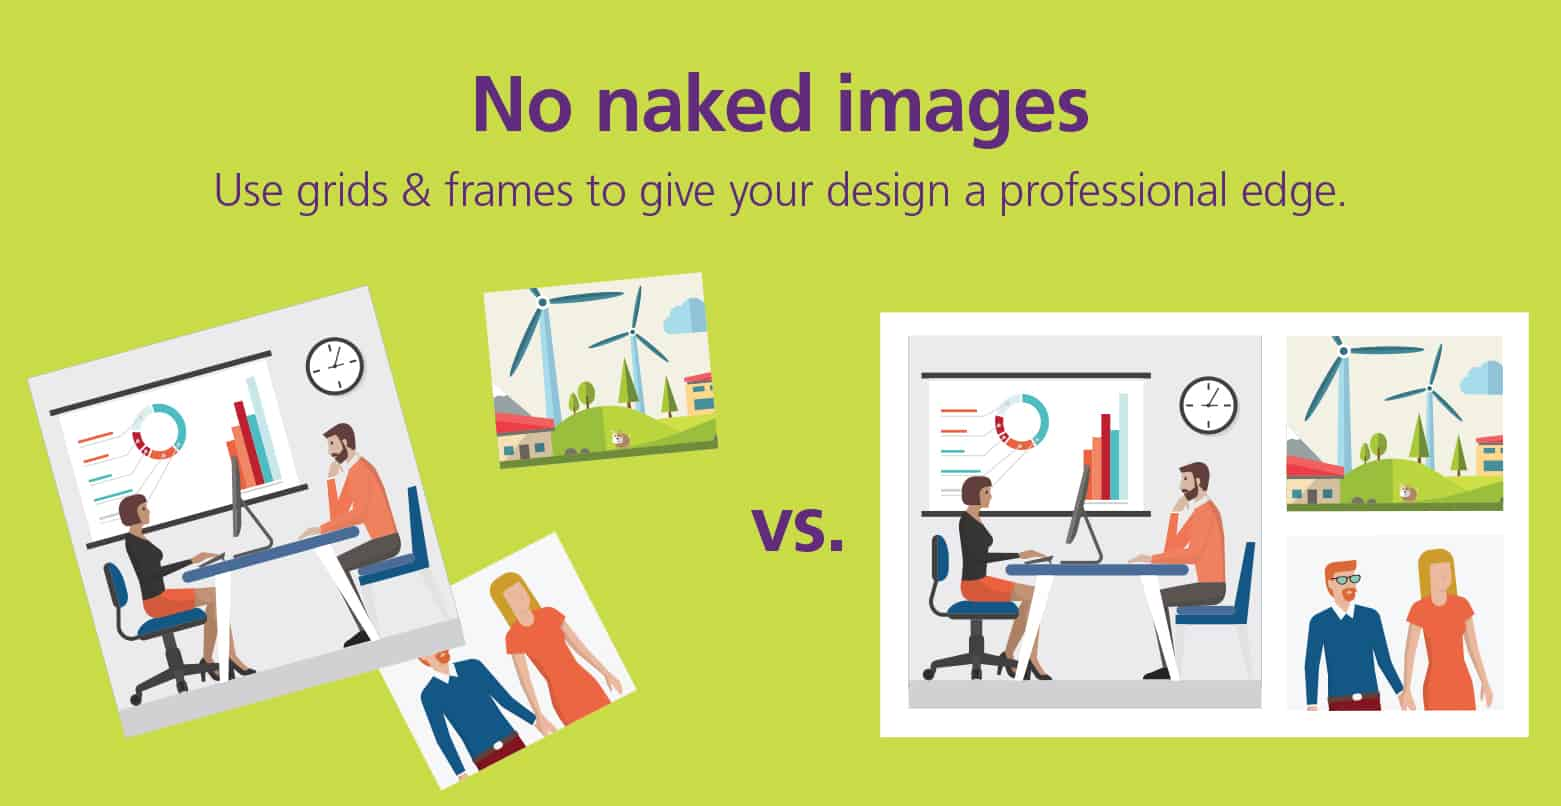 Graphic showing naked images versus non-naked images